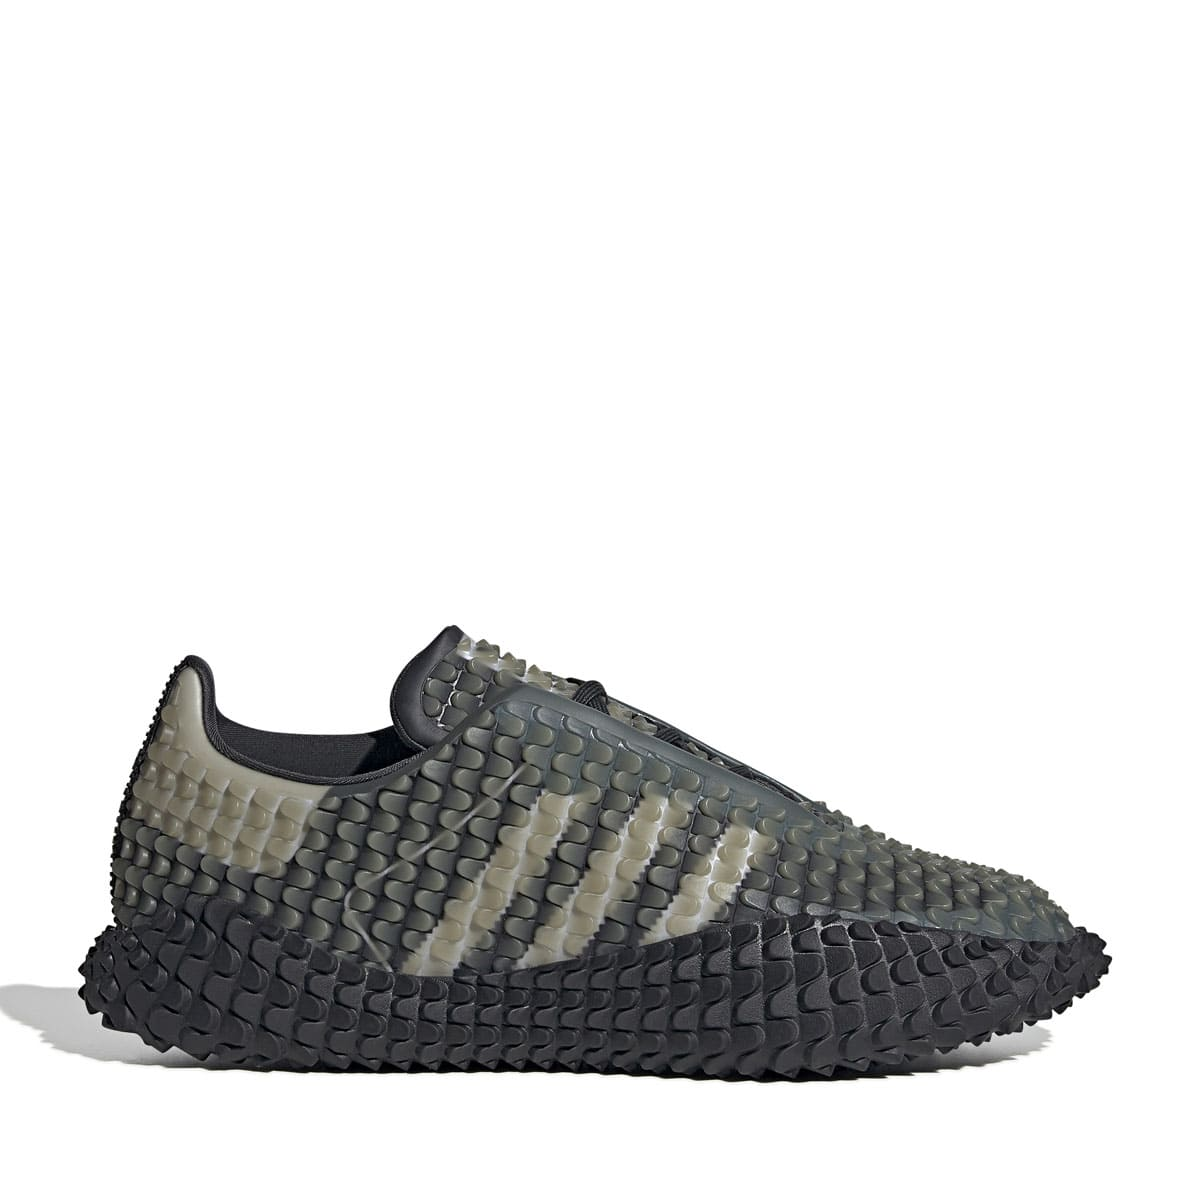 adidas CG GRADDFA AKH CARBON/CORE WHITE/CARBON 20SS-S_photo_large